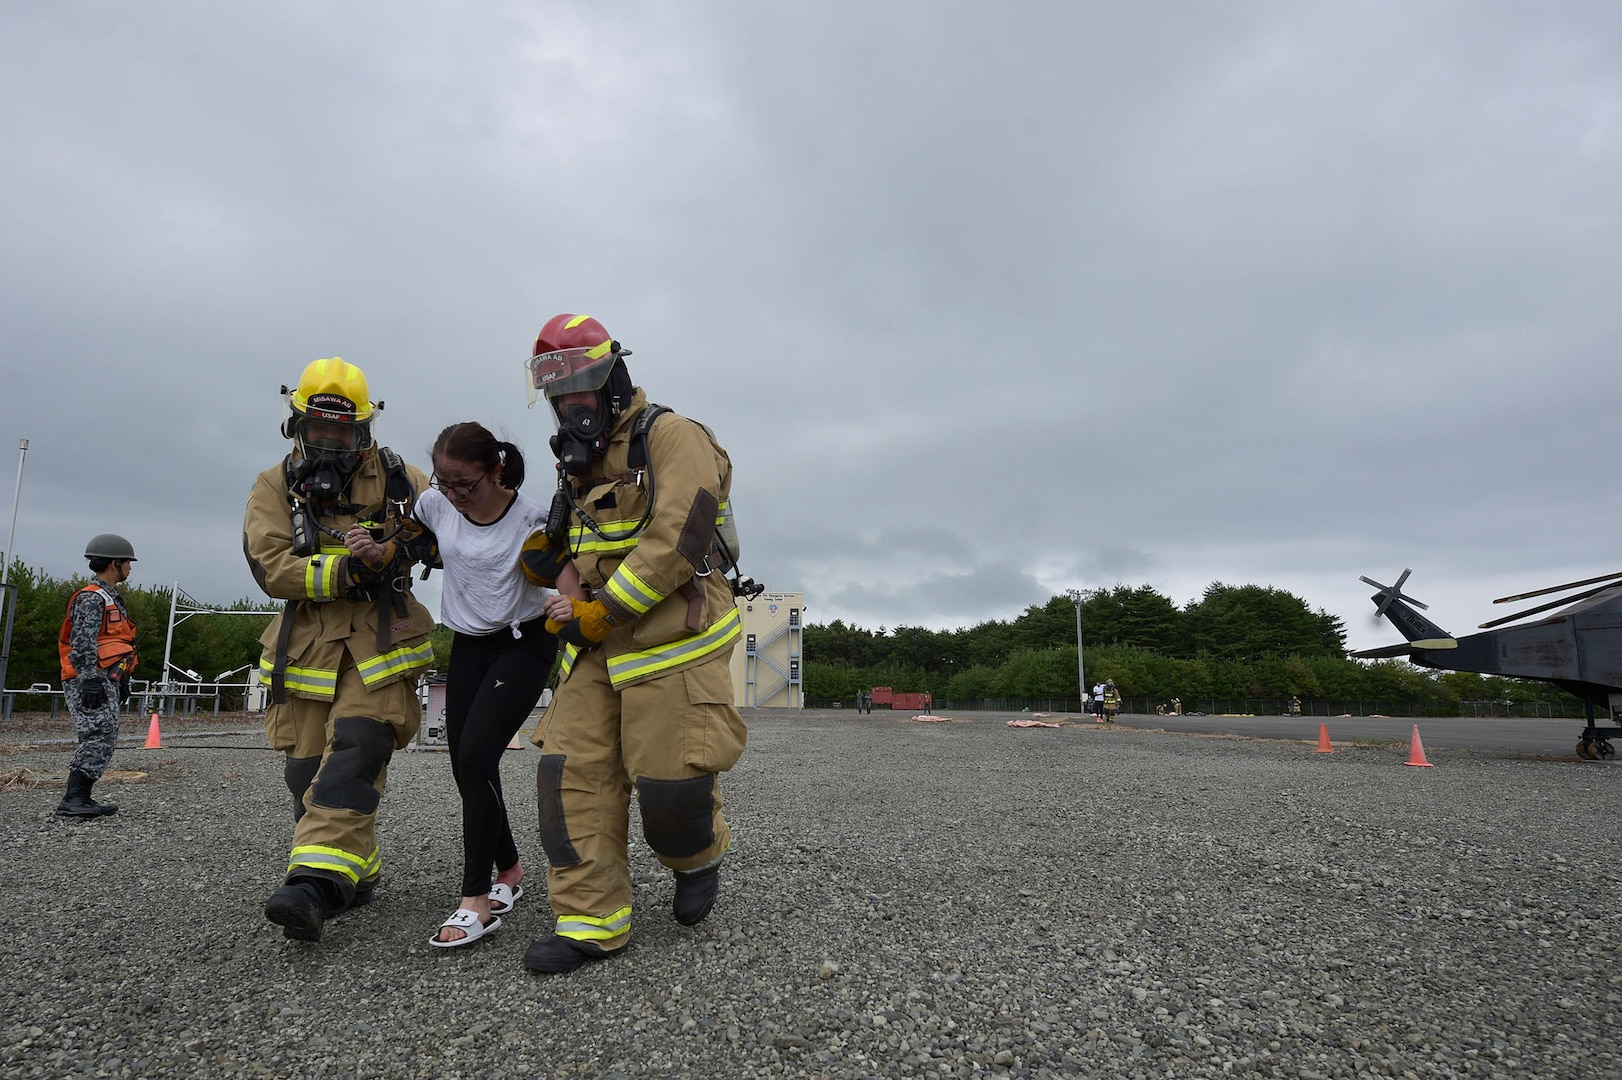 U.S., Japanese emergency responders train to perfect safety, security for air show